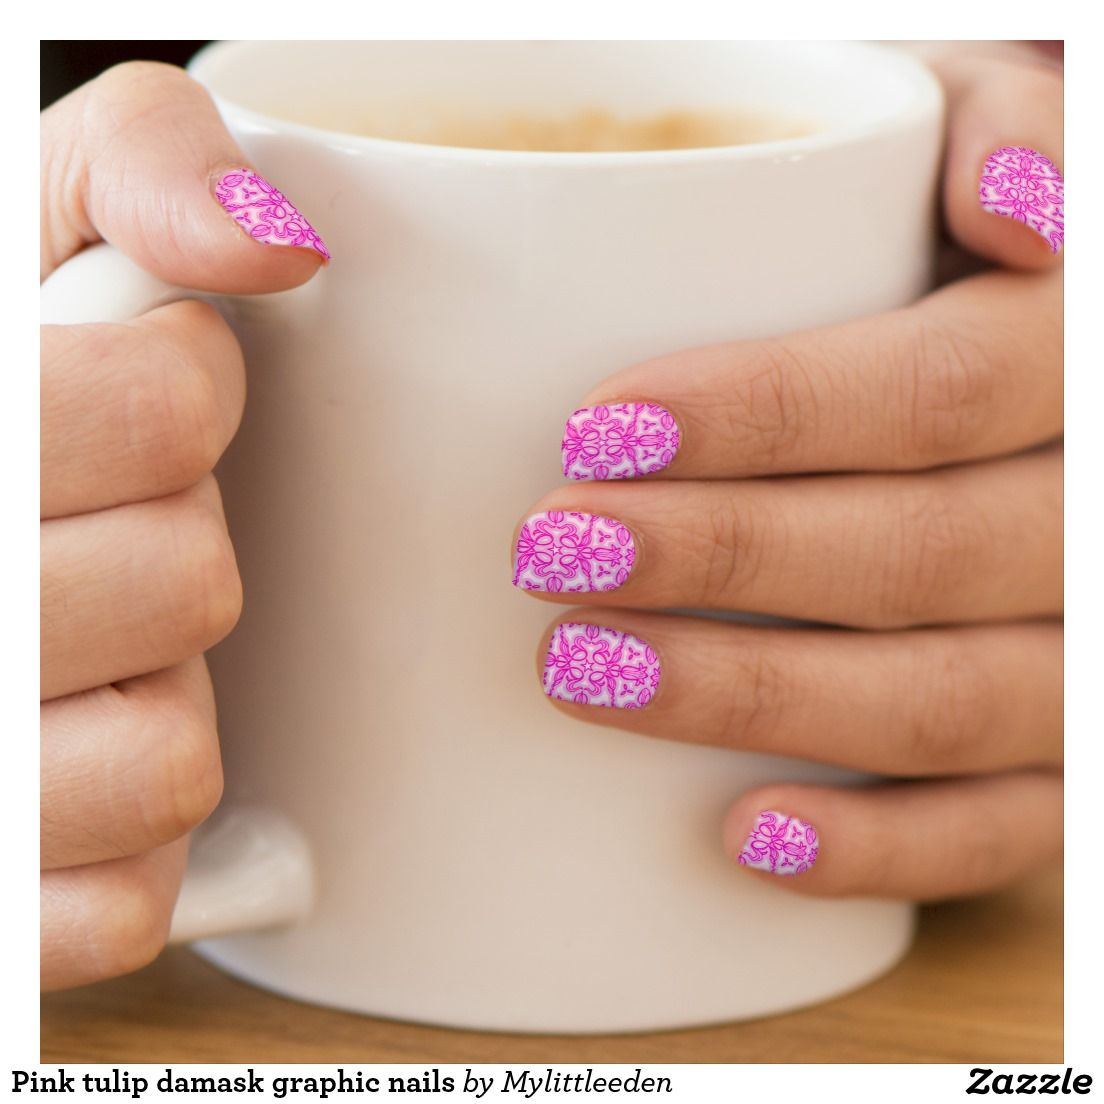 Pink tulip damask graphic nails minx® nail wraps by www.mylittleeden.com #pinknails